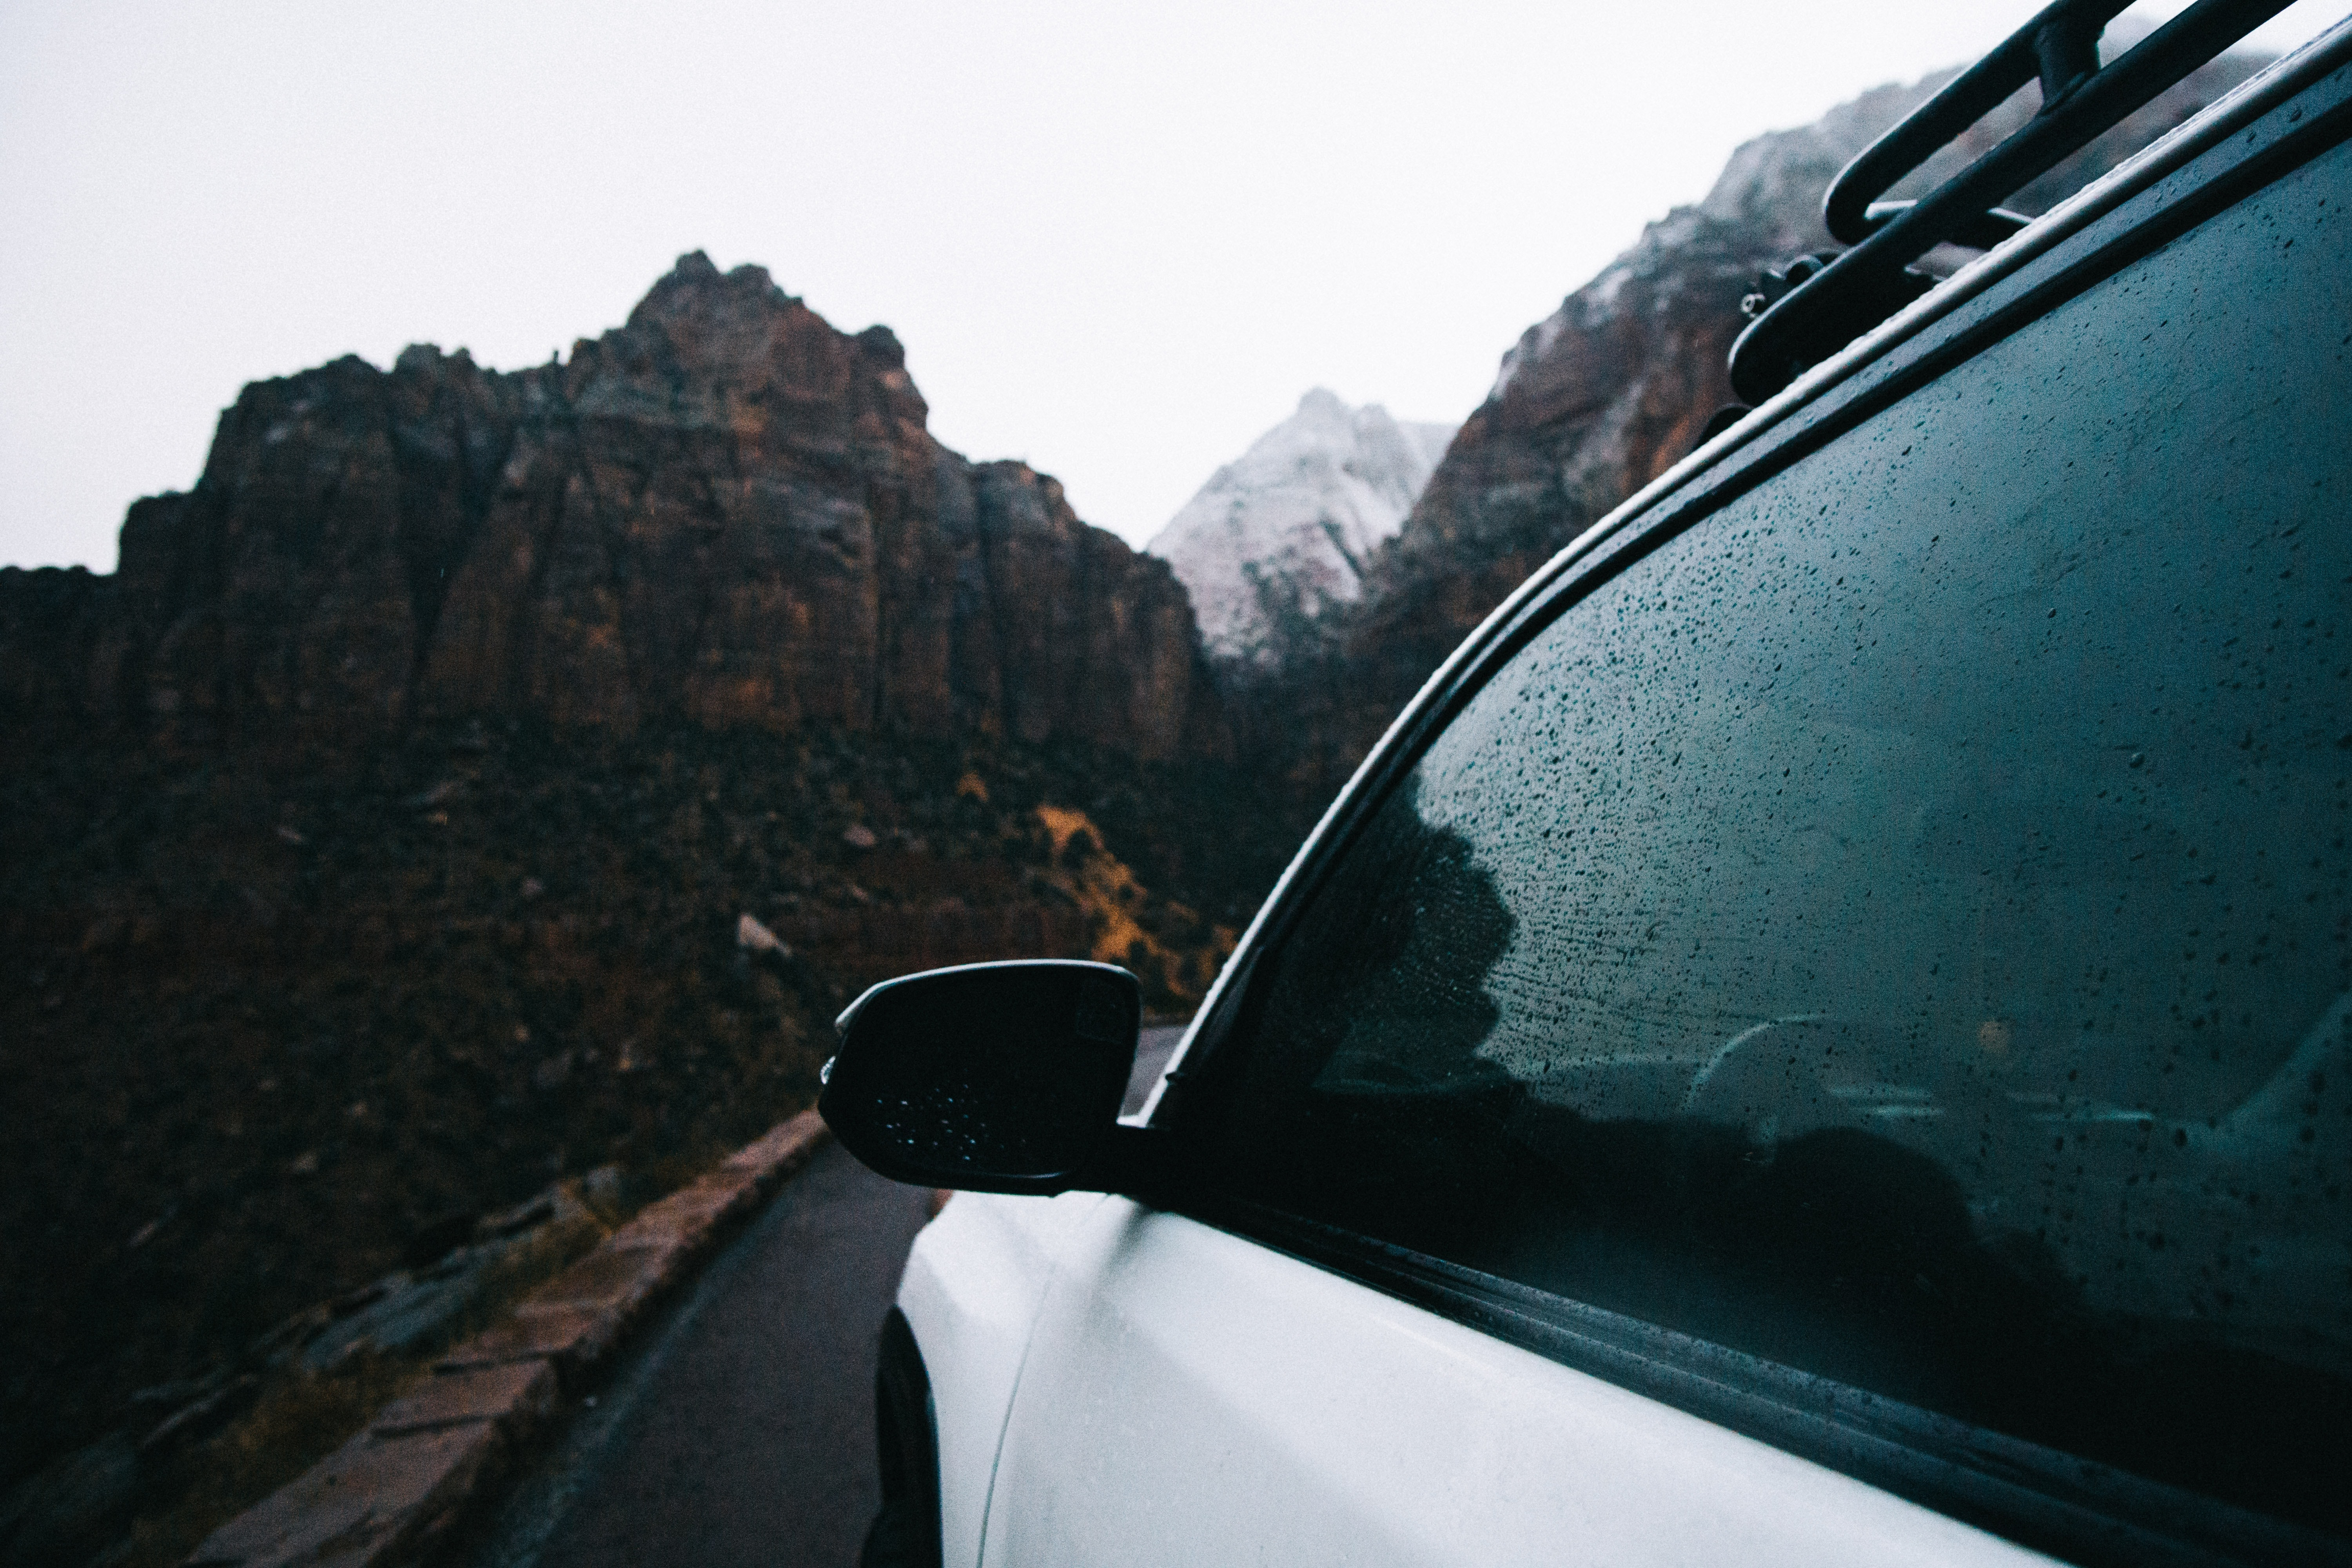 White vehicle driving down a mountain road in a driver's side POV.